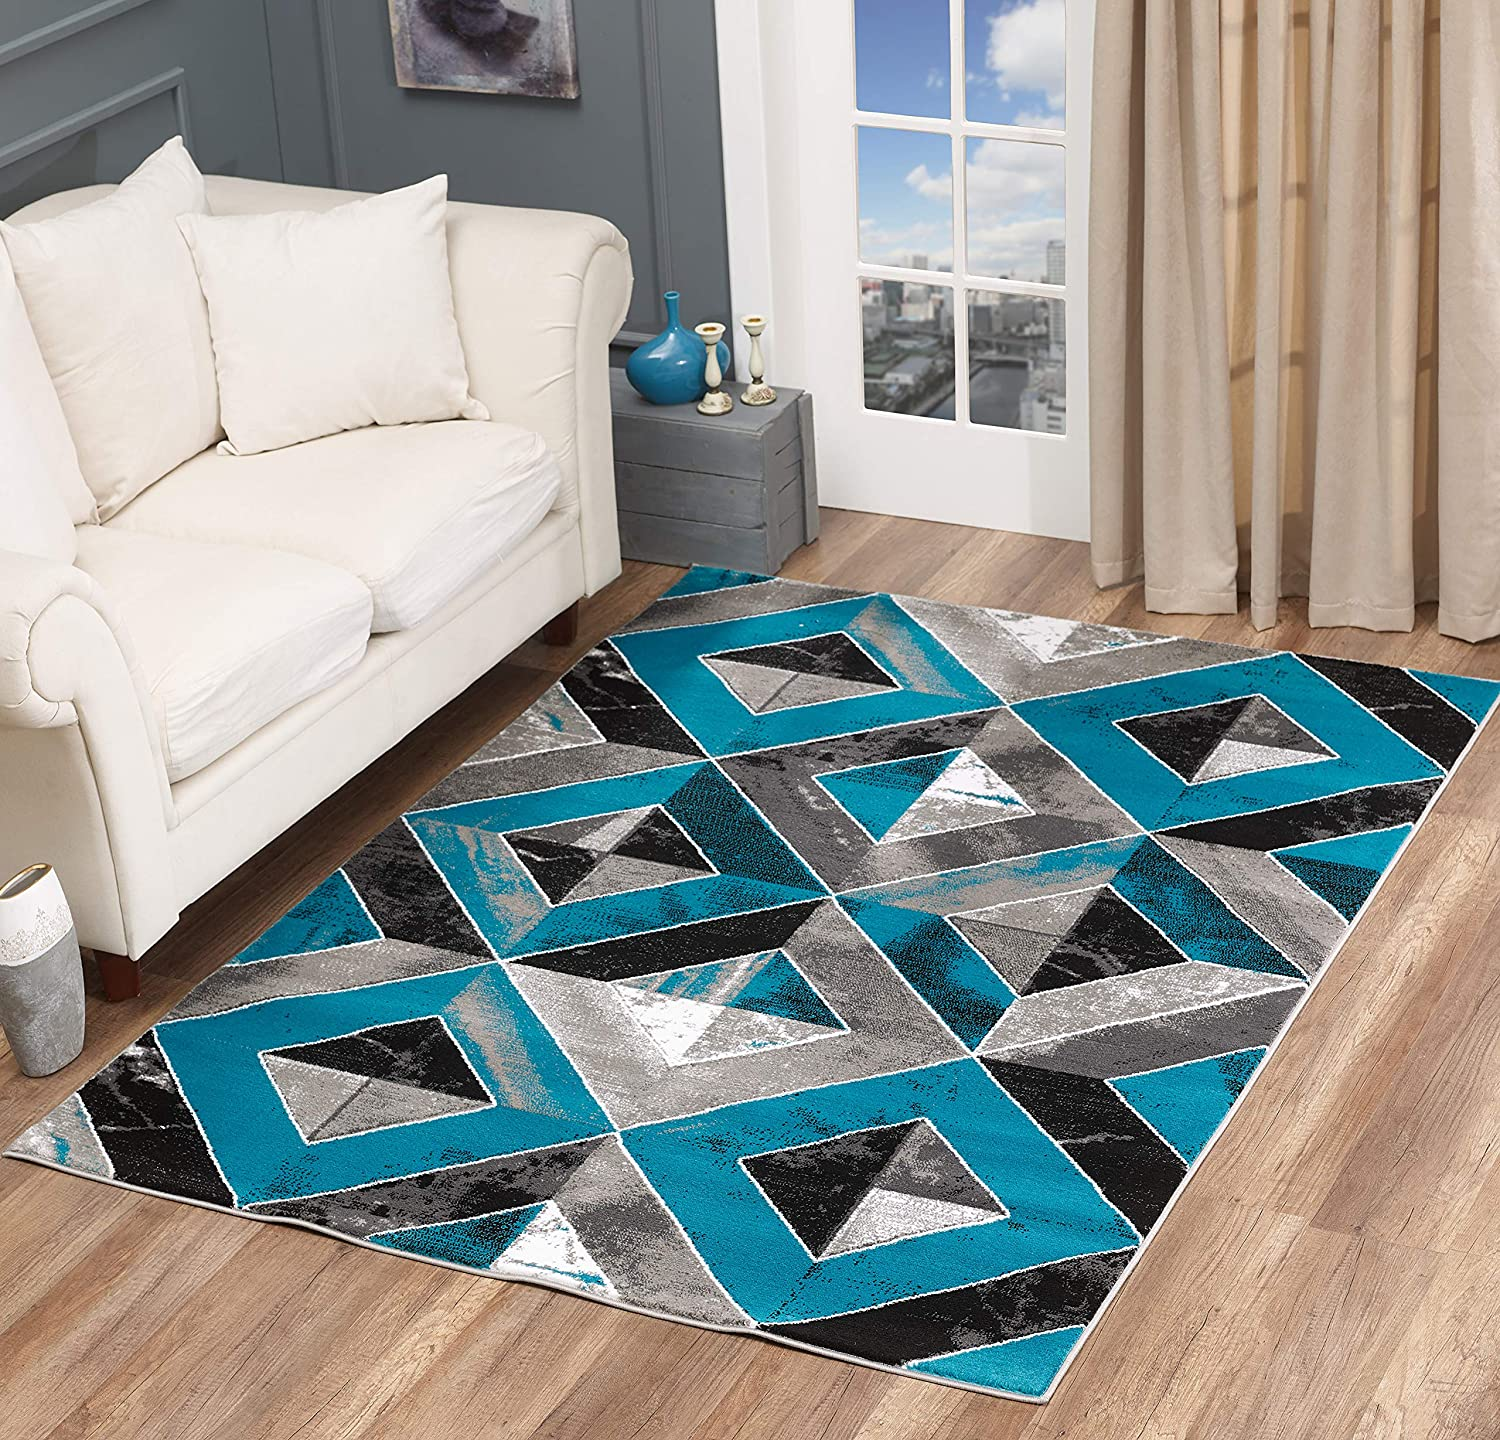 GLORY RUGS Area Rug Manufacturer regenerated product Abstract Ca Diamond Distressed Max 87% OFF Modern